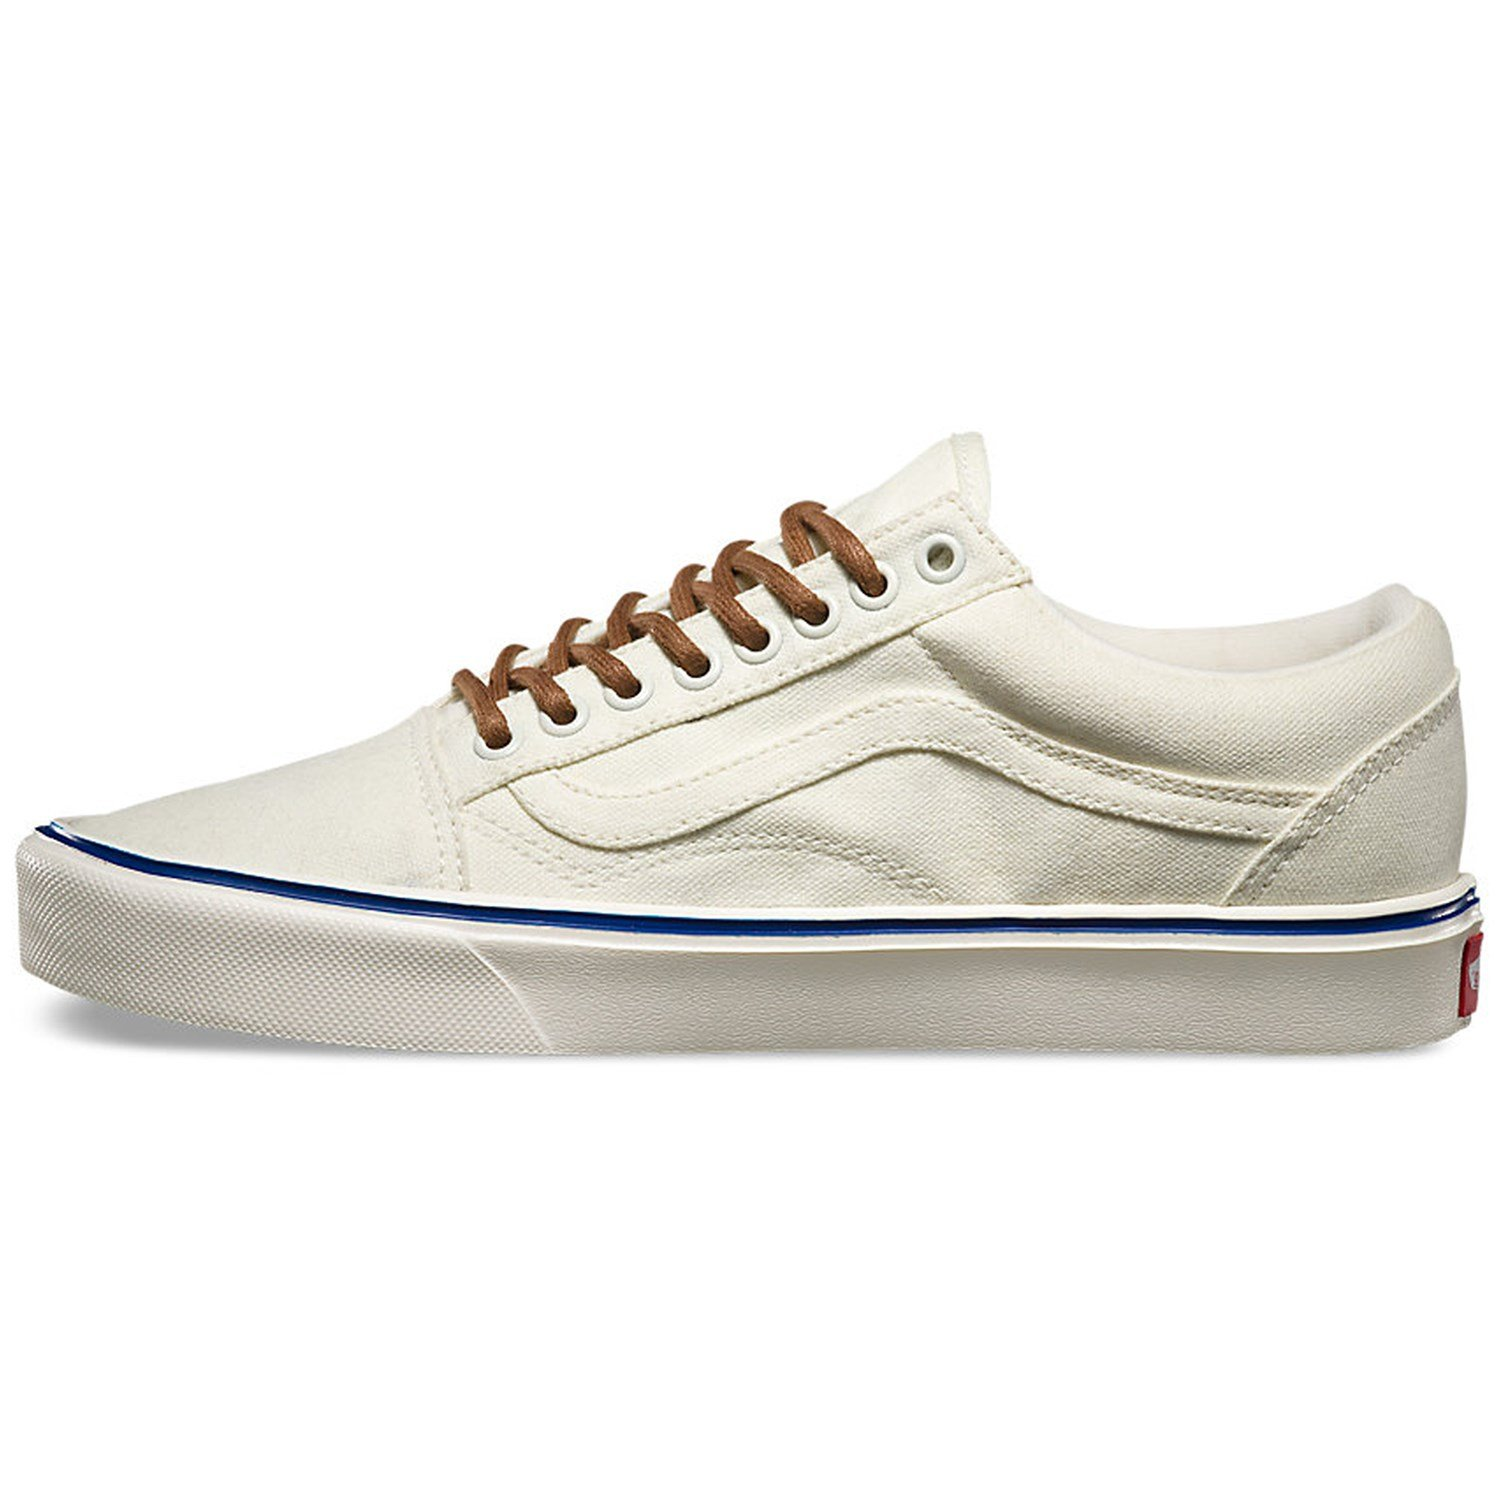 def5b76bbe Vans Old Skool Lite Shoes